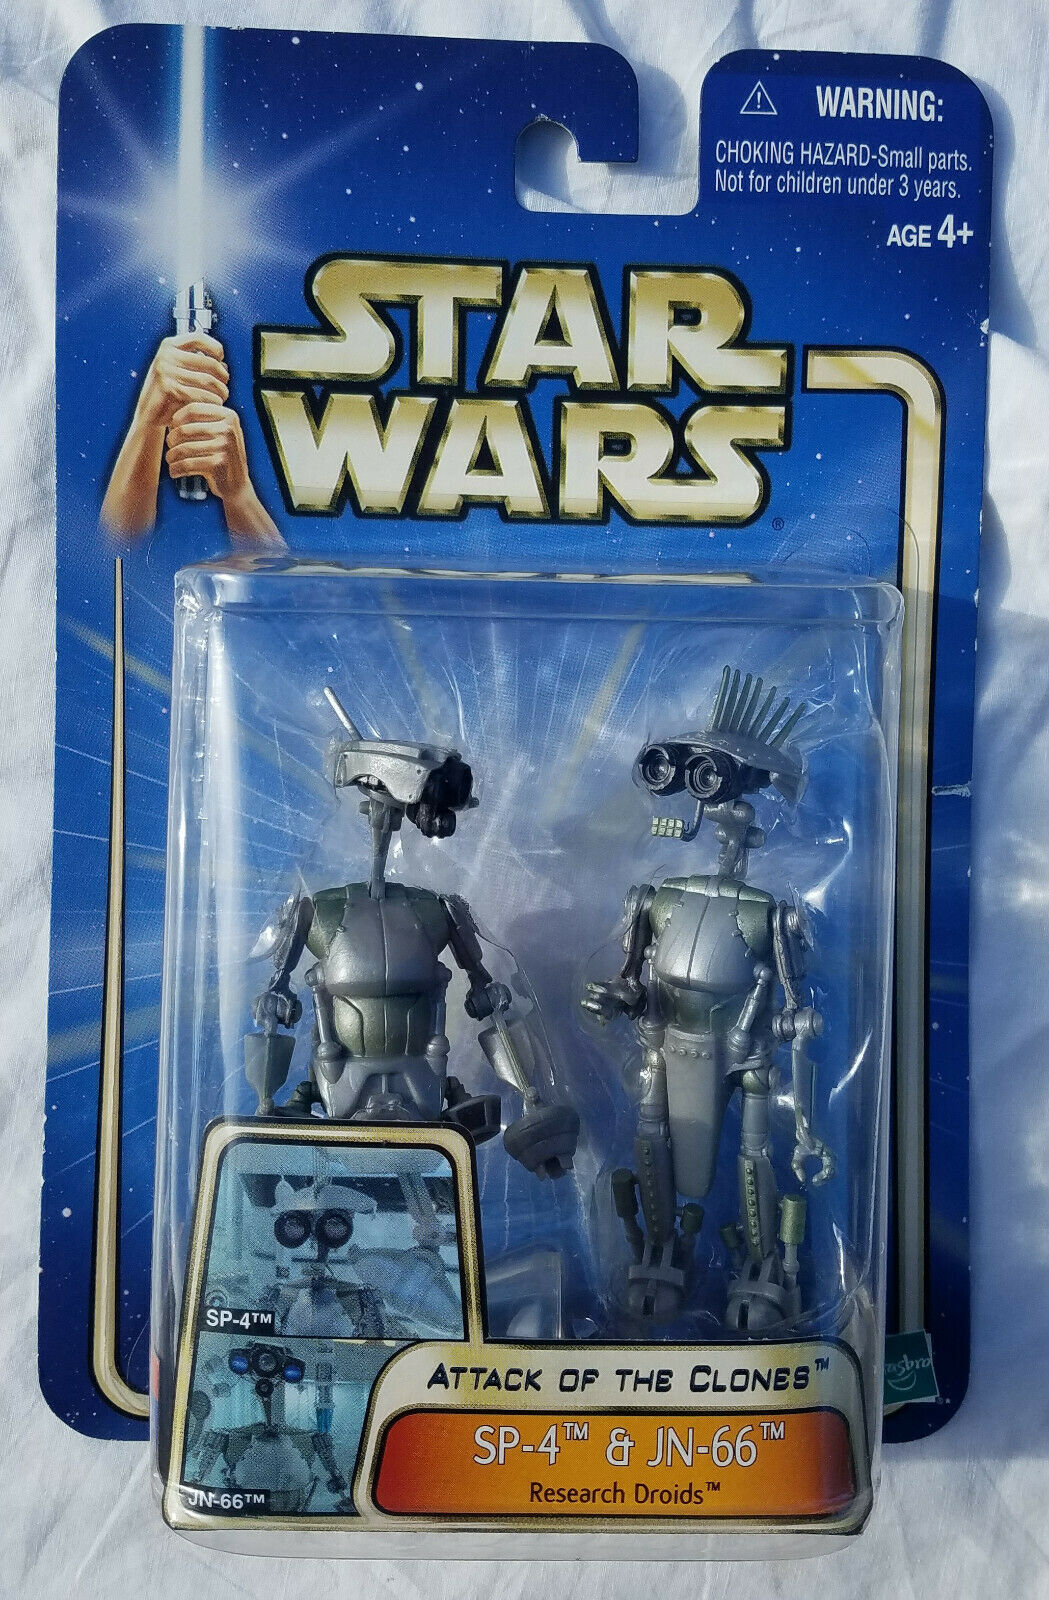 Star Wars AOTC Sp-4 /& Jn-66 Research Droids Action Figures